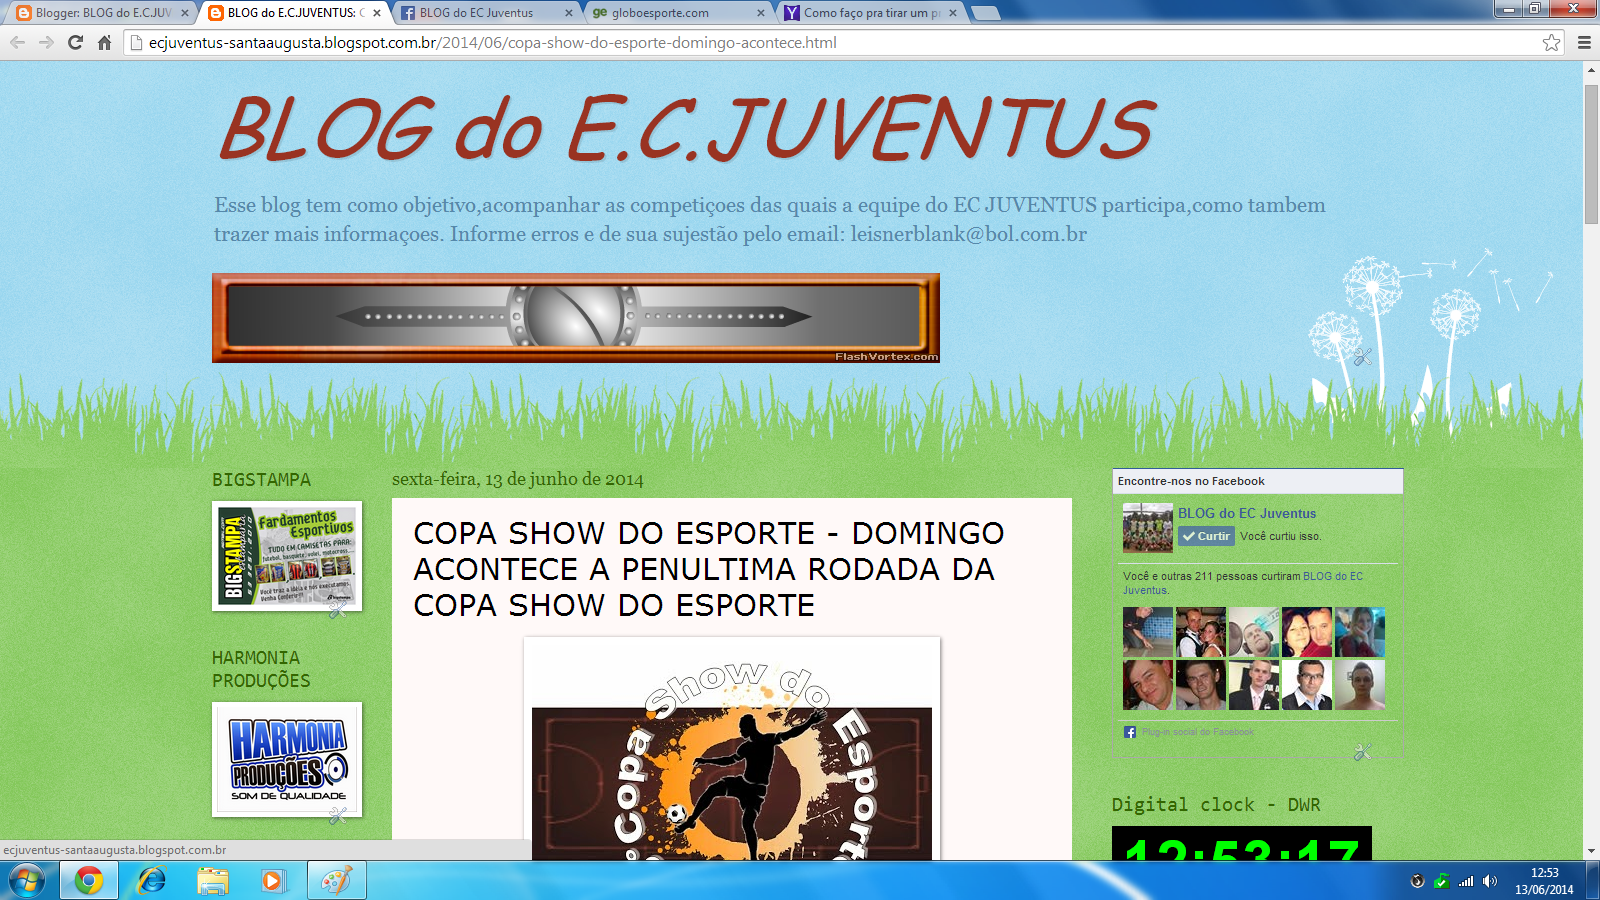 BLOG DO EC JUVENTUS